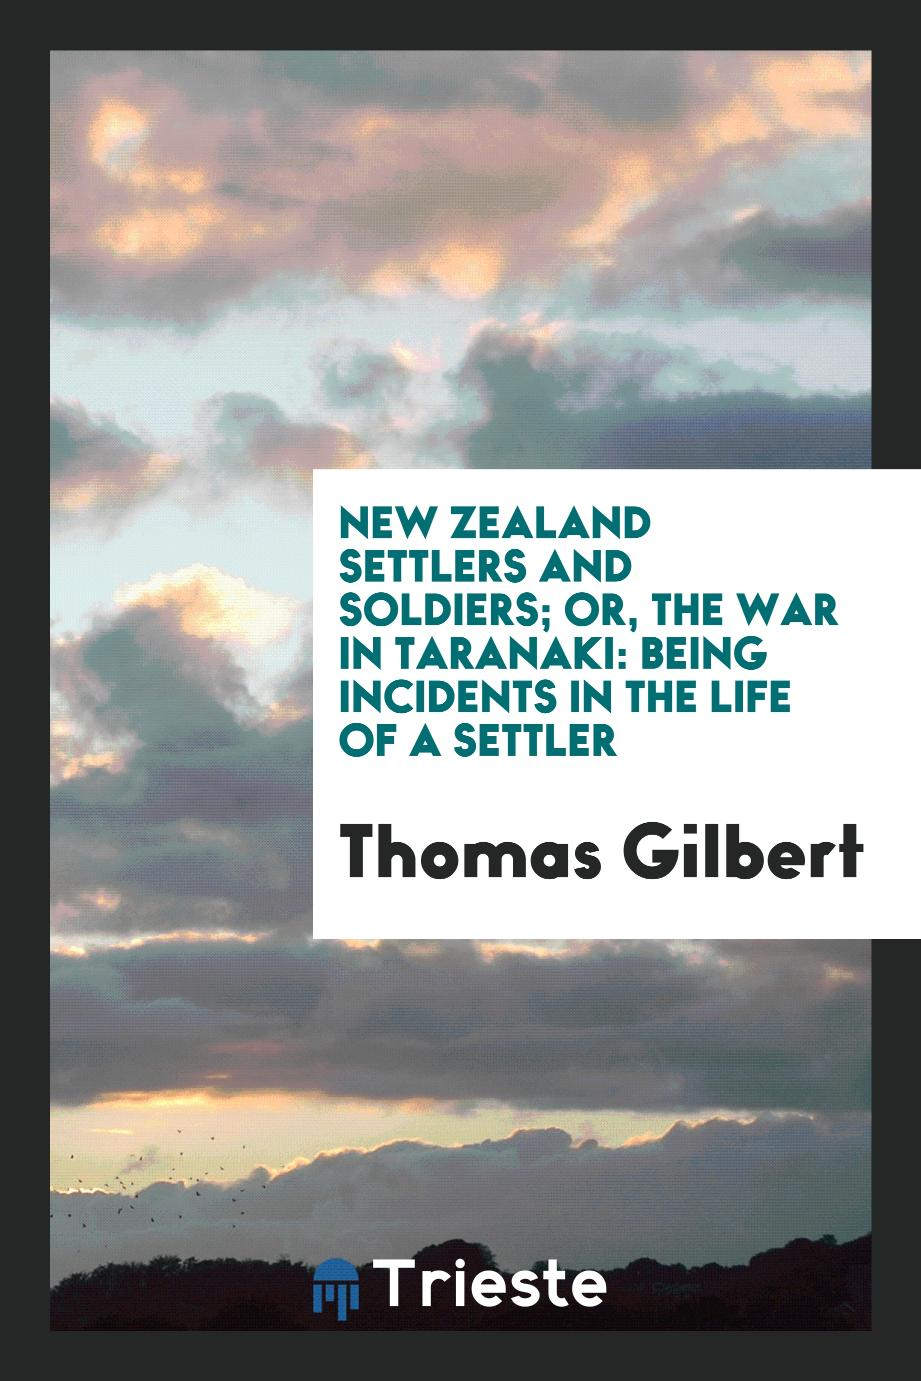 New Zealand Settlers and Soldiers; Or, The War in Taranaki: Being Incidents in the Life of a Settler